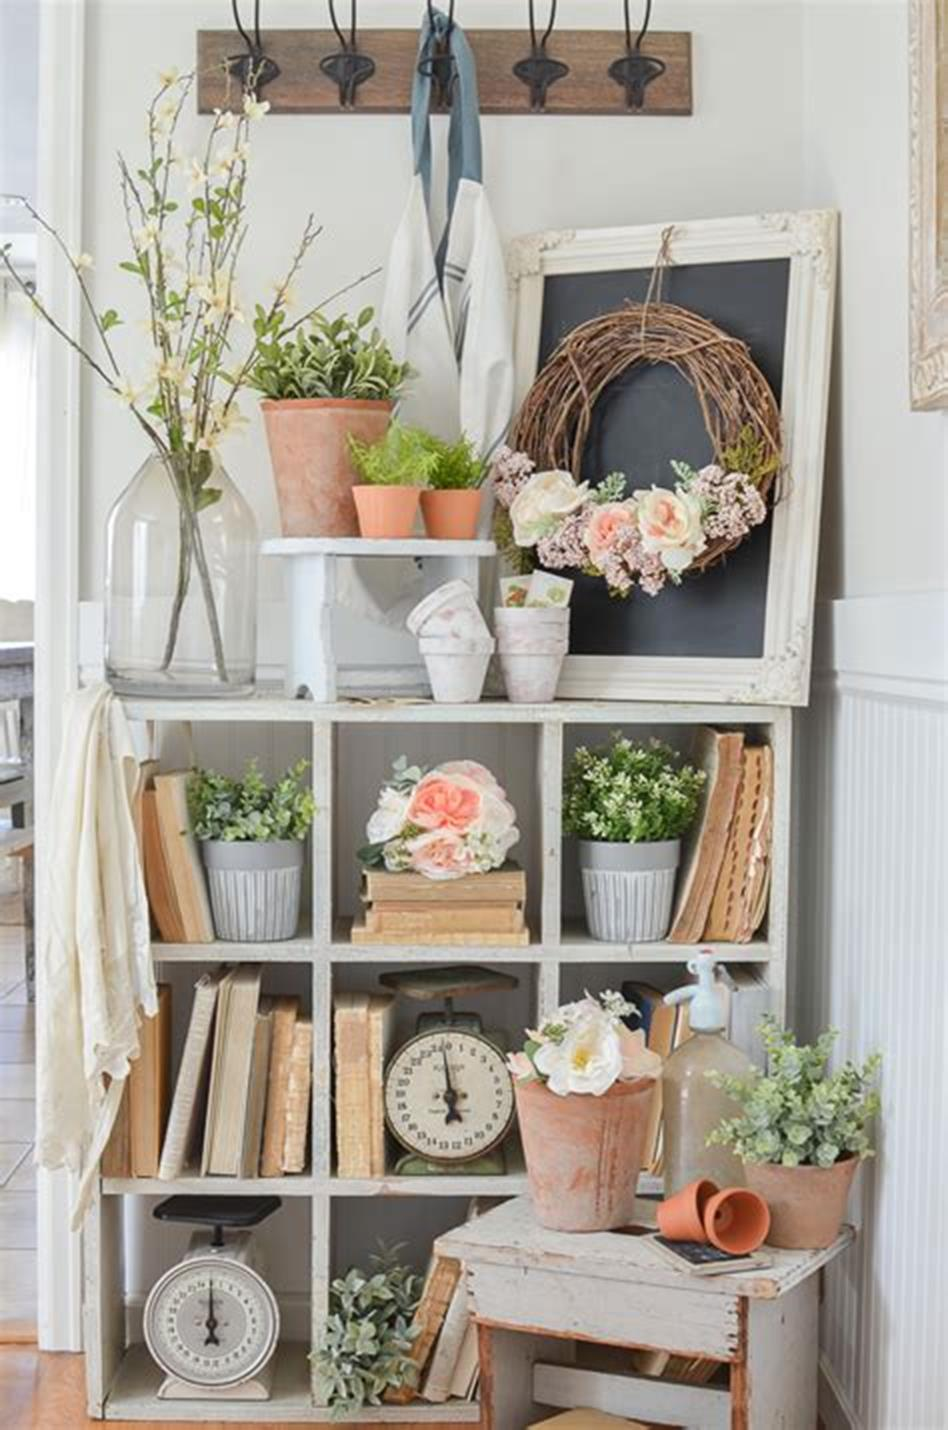 35 Stunning Spring Kitchen and Dining Room Decorating Ideas 2019 46